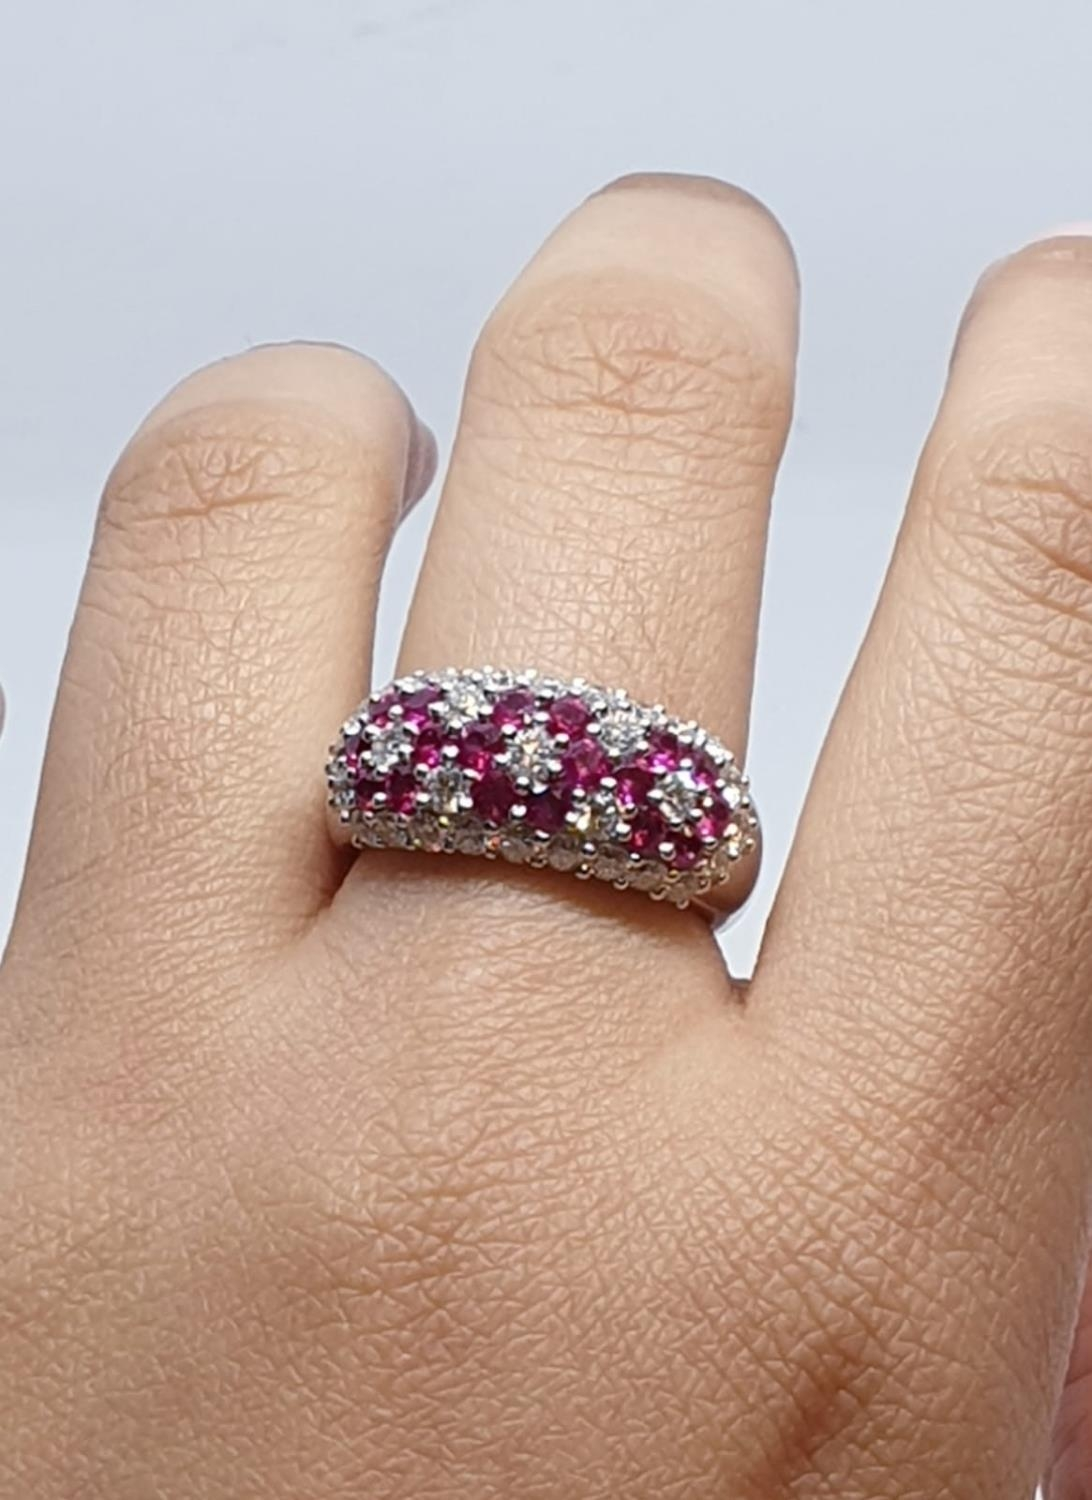 18ct white gold ring with over 1ct ruby and 1.8ct diamonds in flower design, weight 9.39g and size M - Image 9 of 11